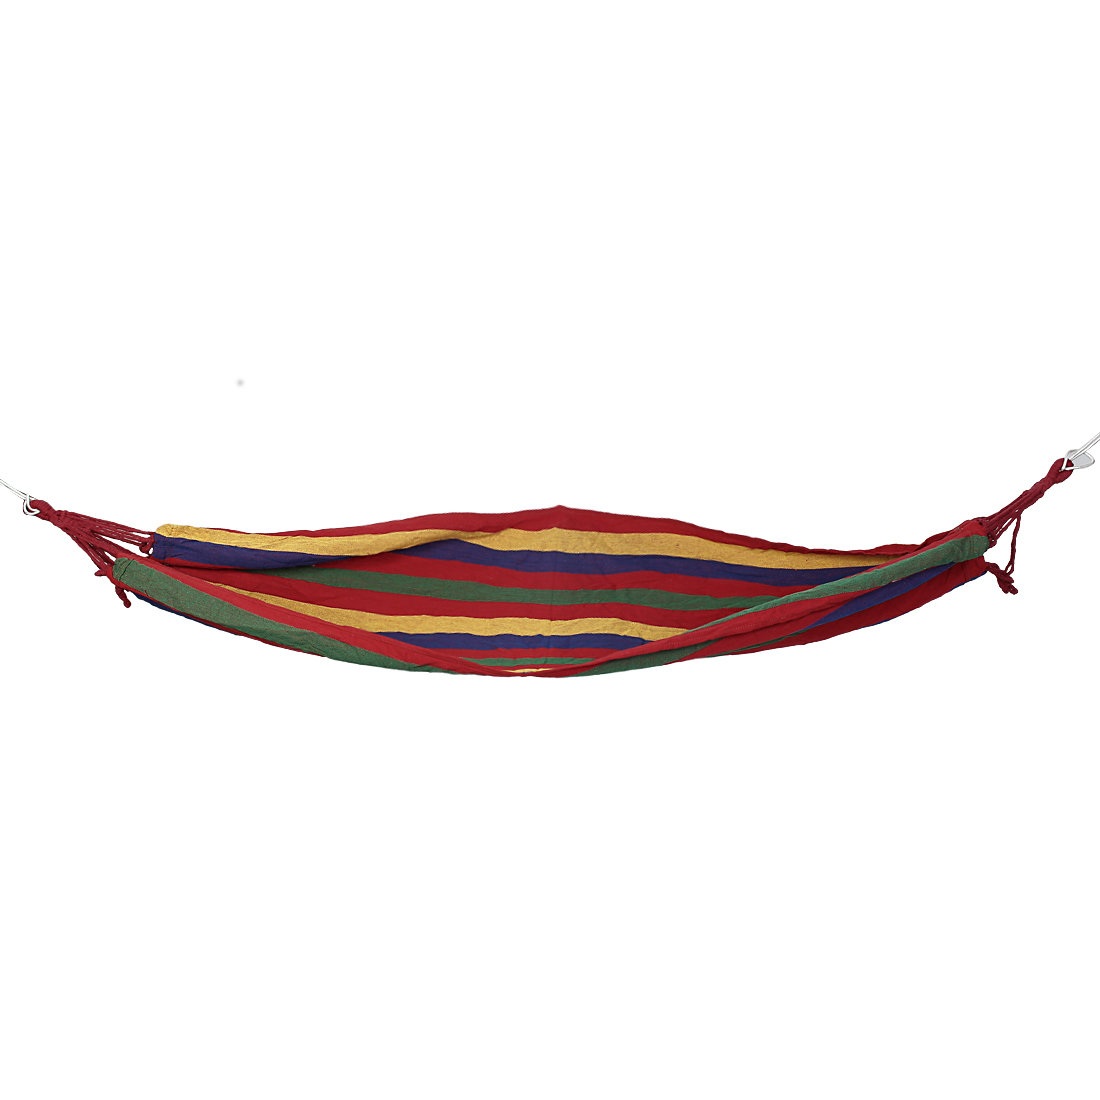 Outdoor Canvas Sleeping Hammock Portable Travel Camping Hiking Swing Hanging Bed 180cm x 80cm